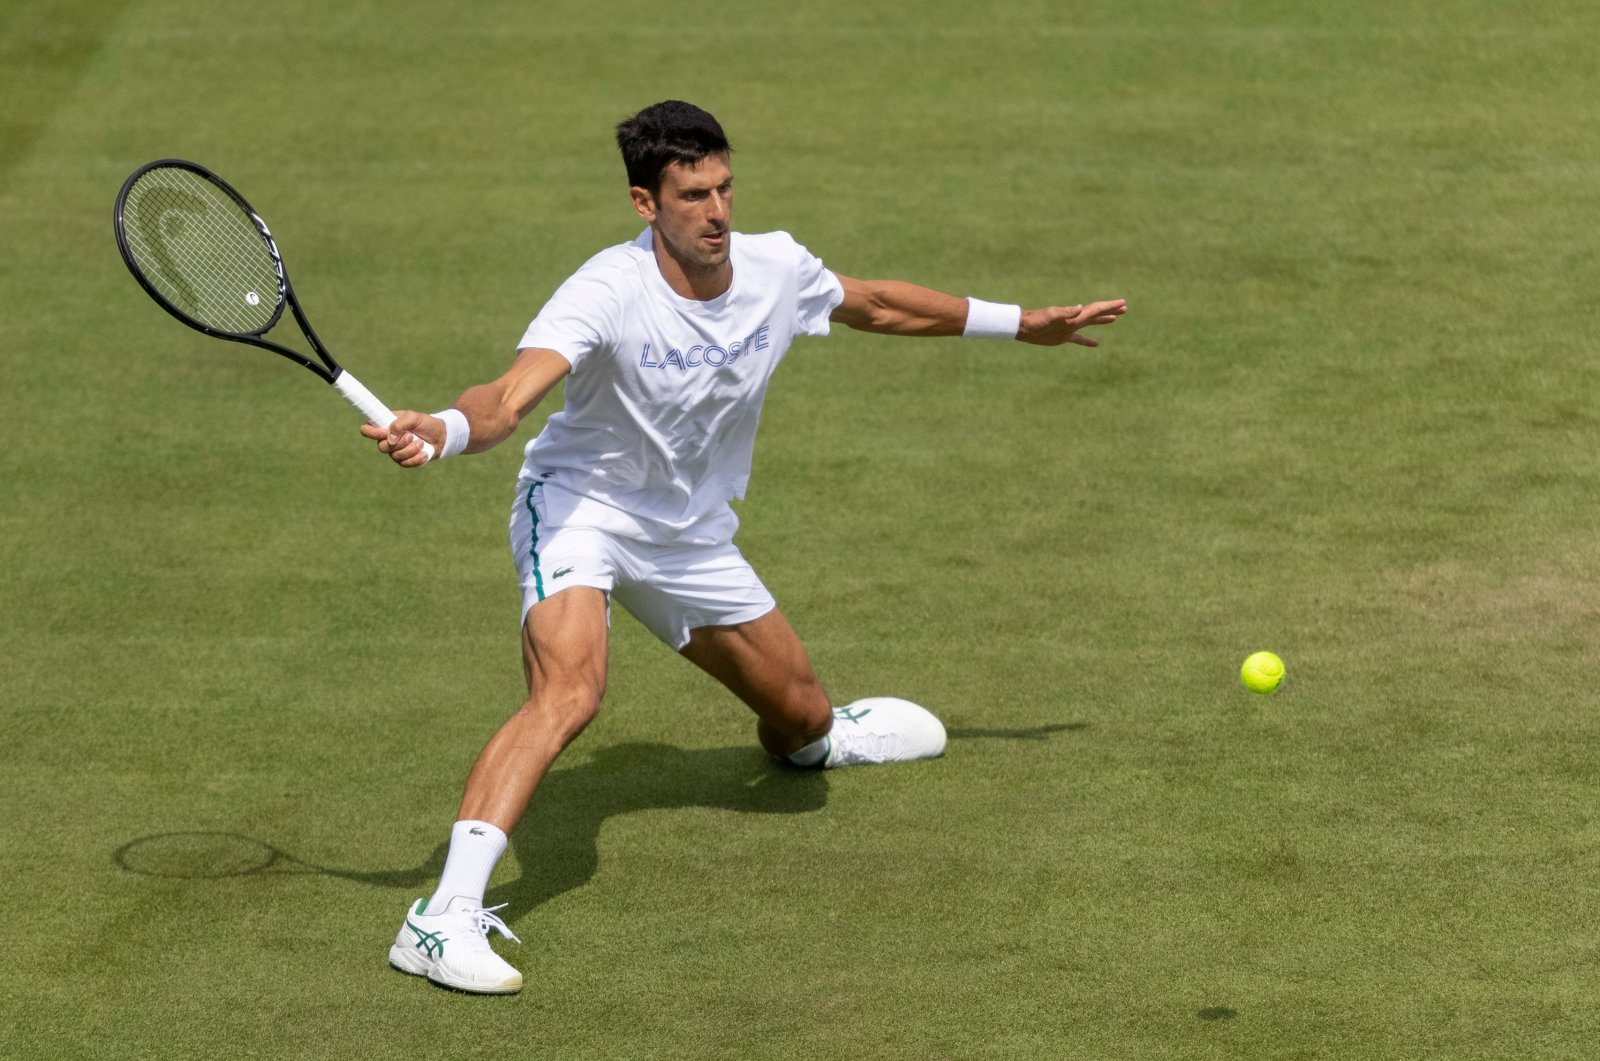 Serbia's Novak Djokovic takes part in a practice session at The All England Tennis Club in Wimbledon, southwest London, England, June 25, 2021 (AFP Photo)